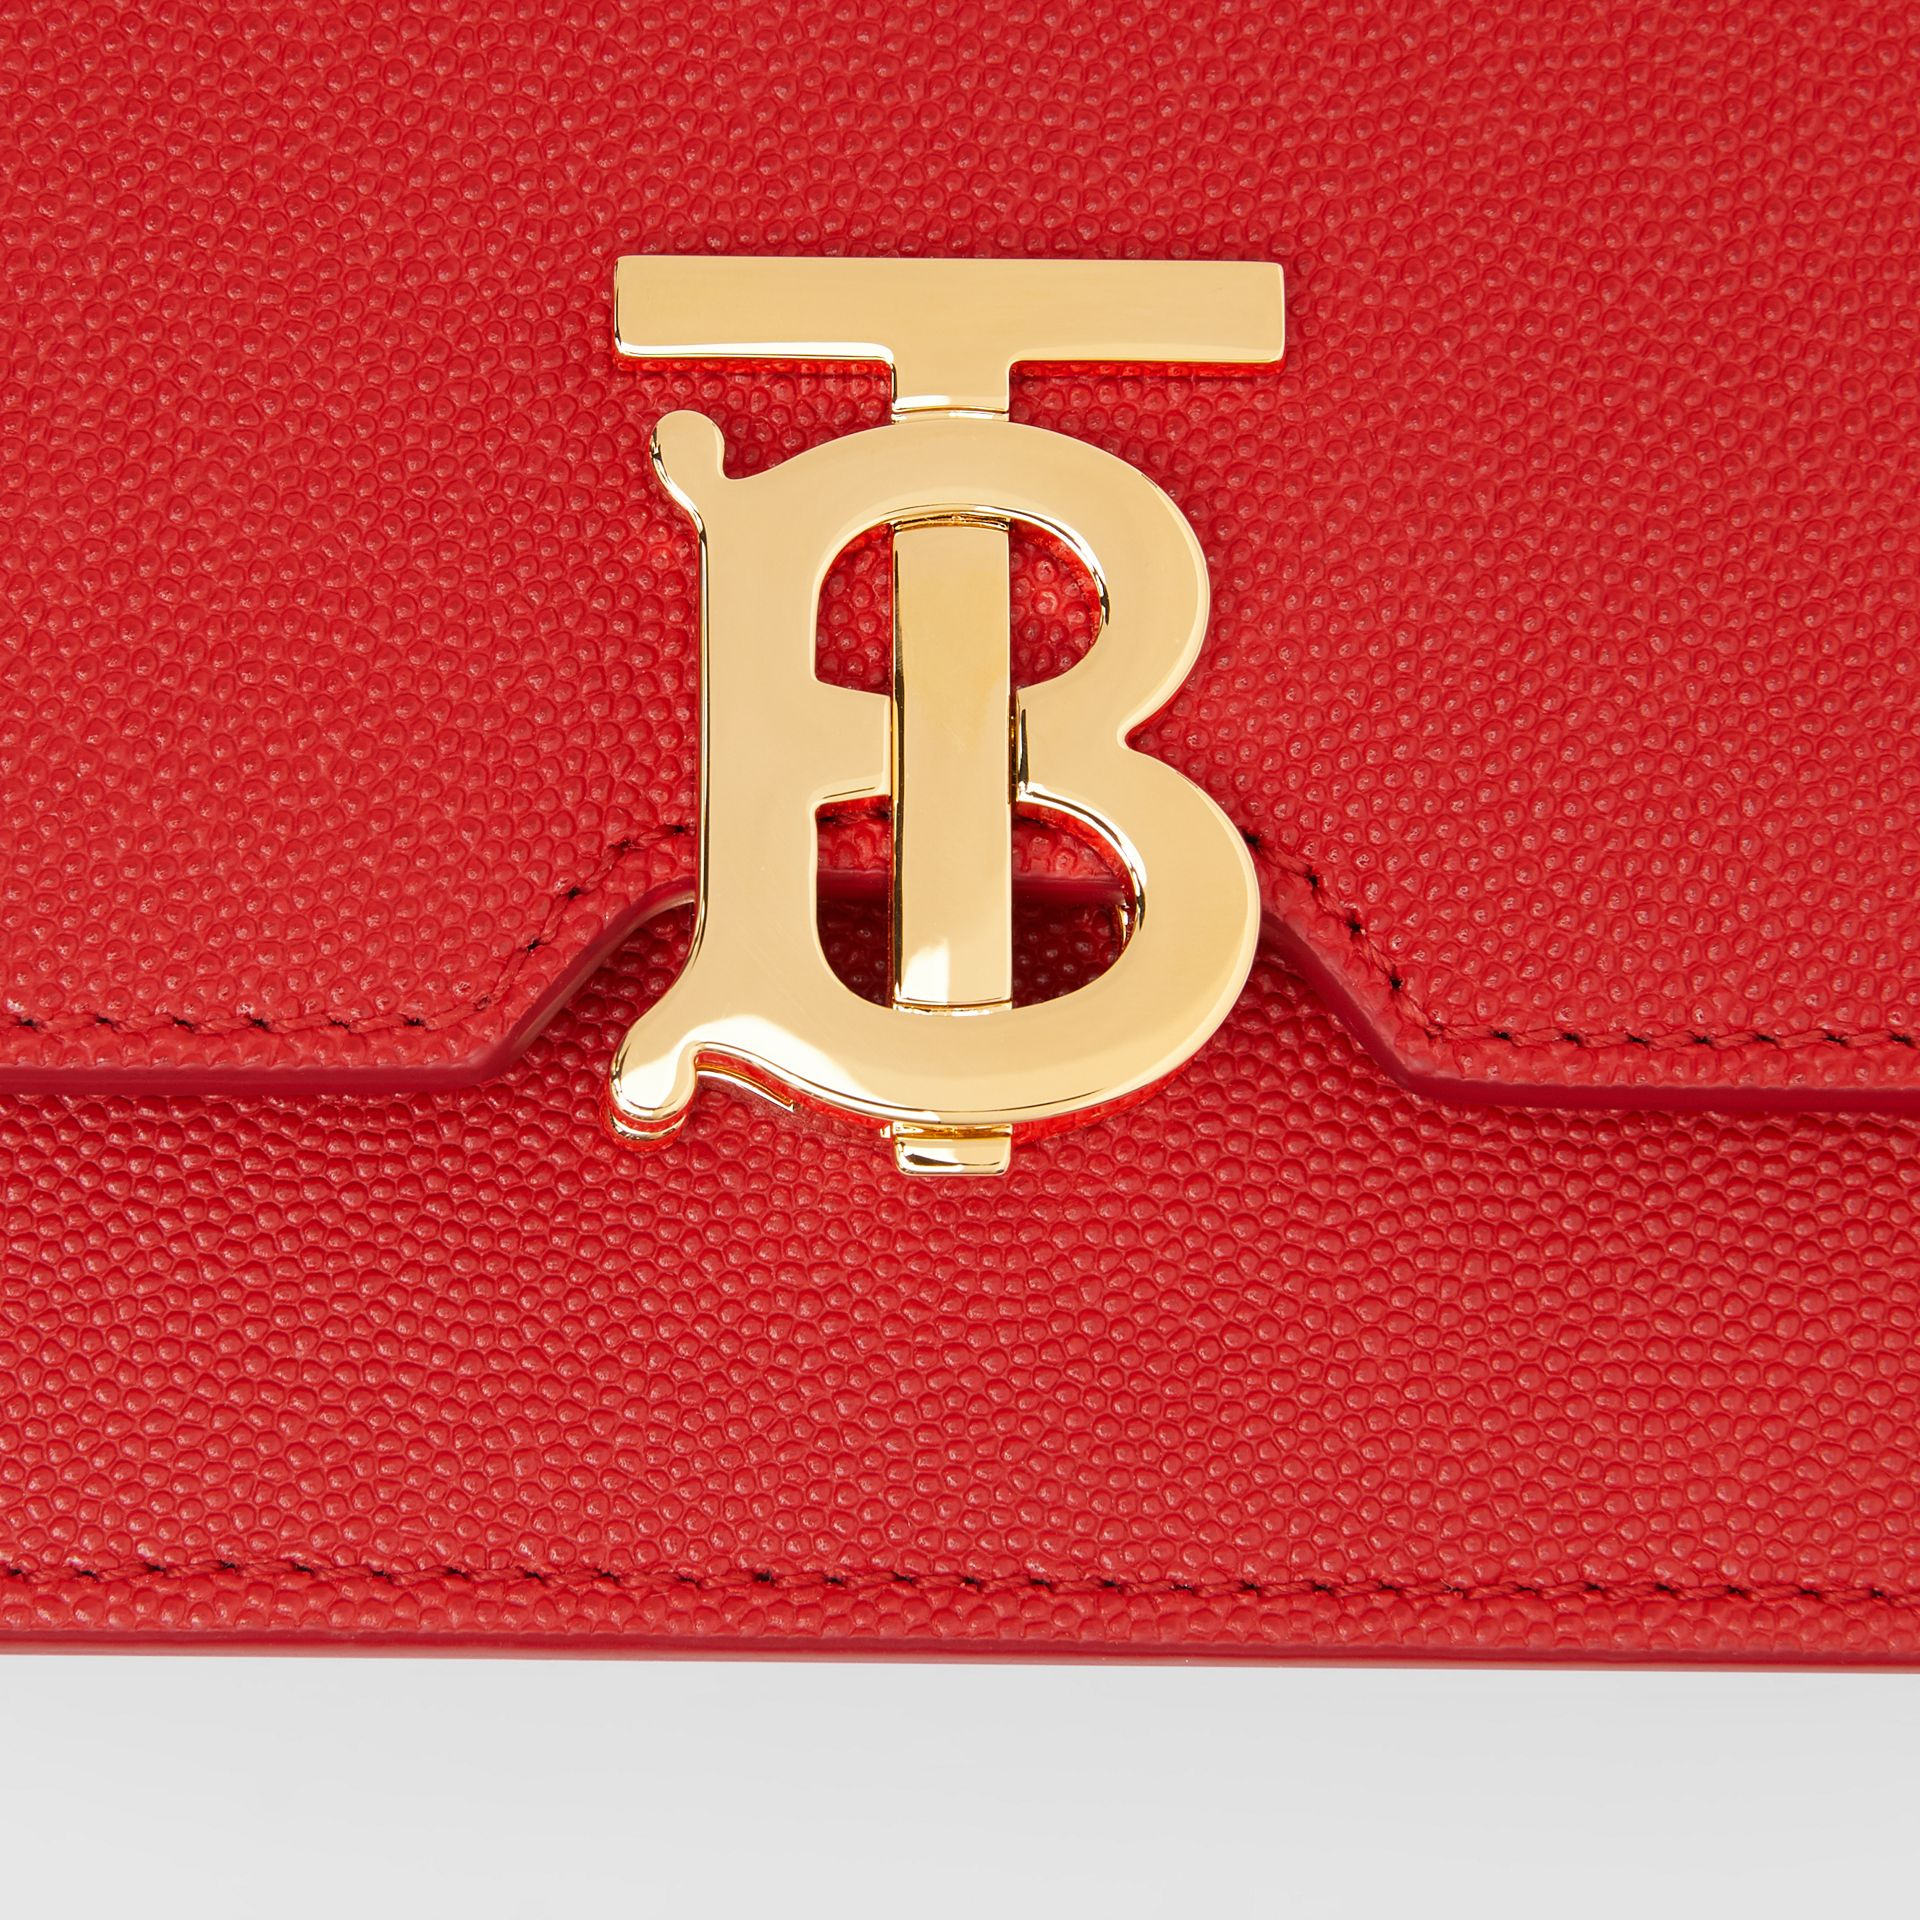 Mini Grainy Leather TB Bag in Bright Red - Women | Burberry - gallery image 1